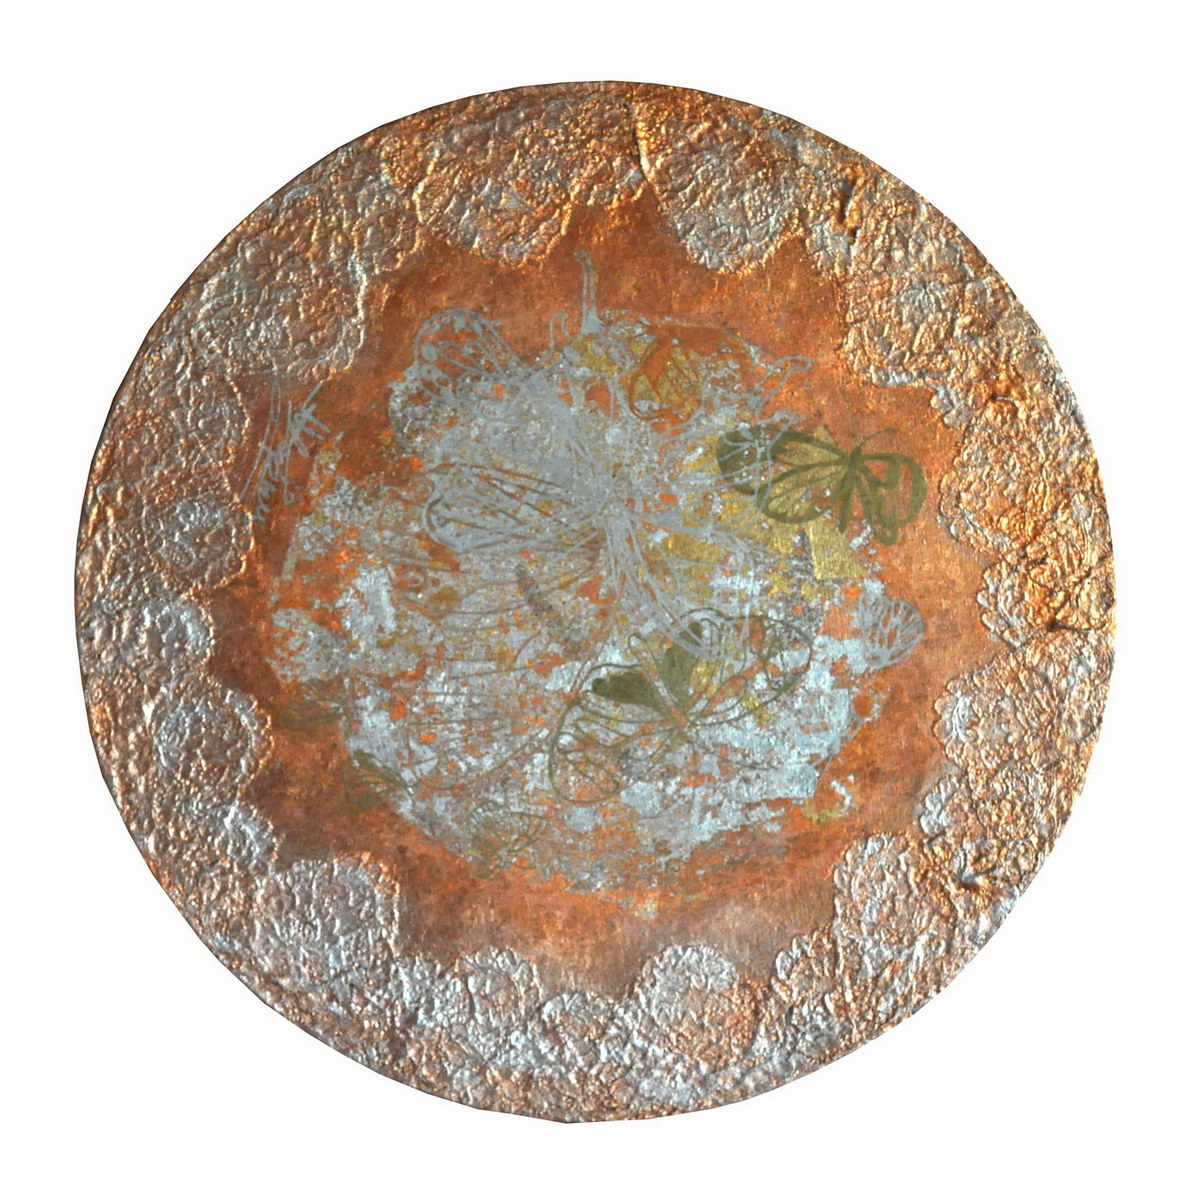 5th Dimension Earth I (60cm) mixed media on round canvas